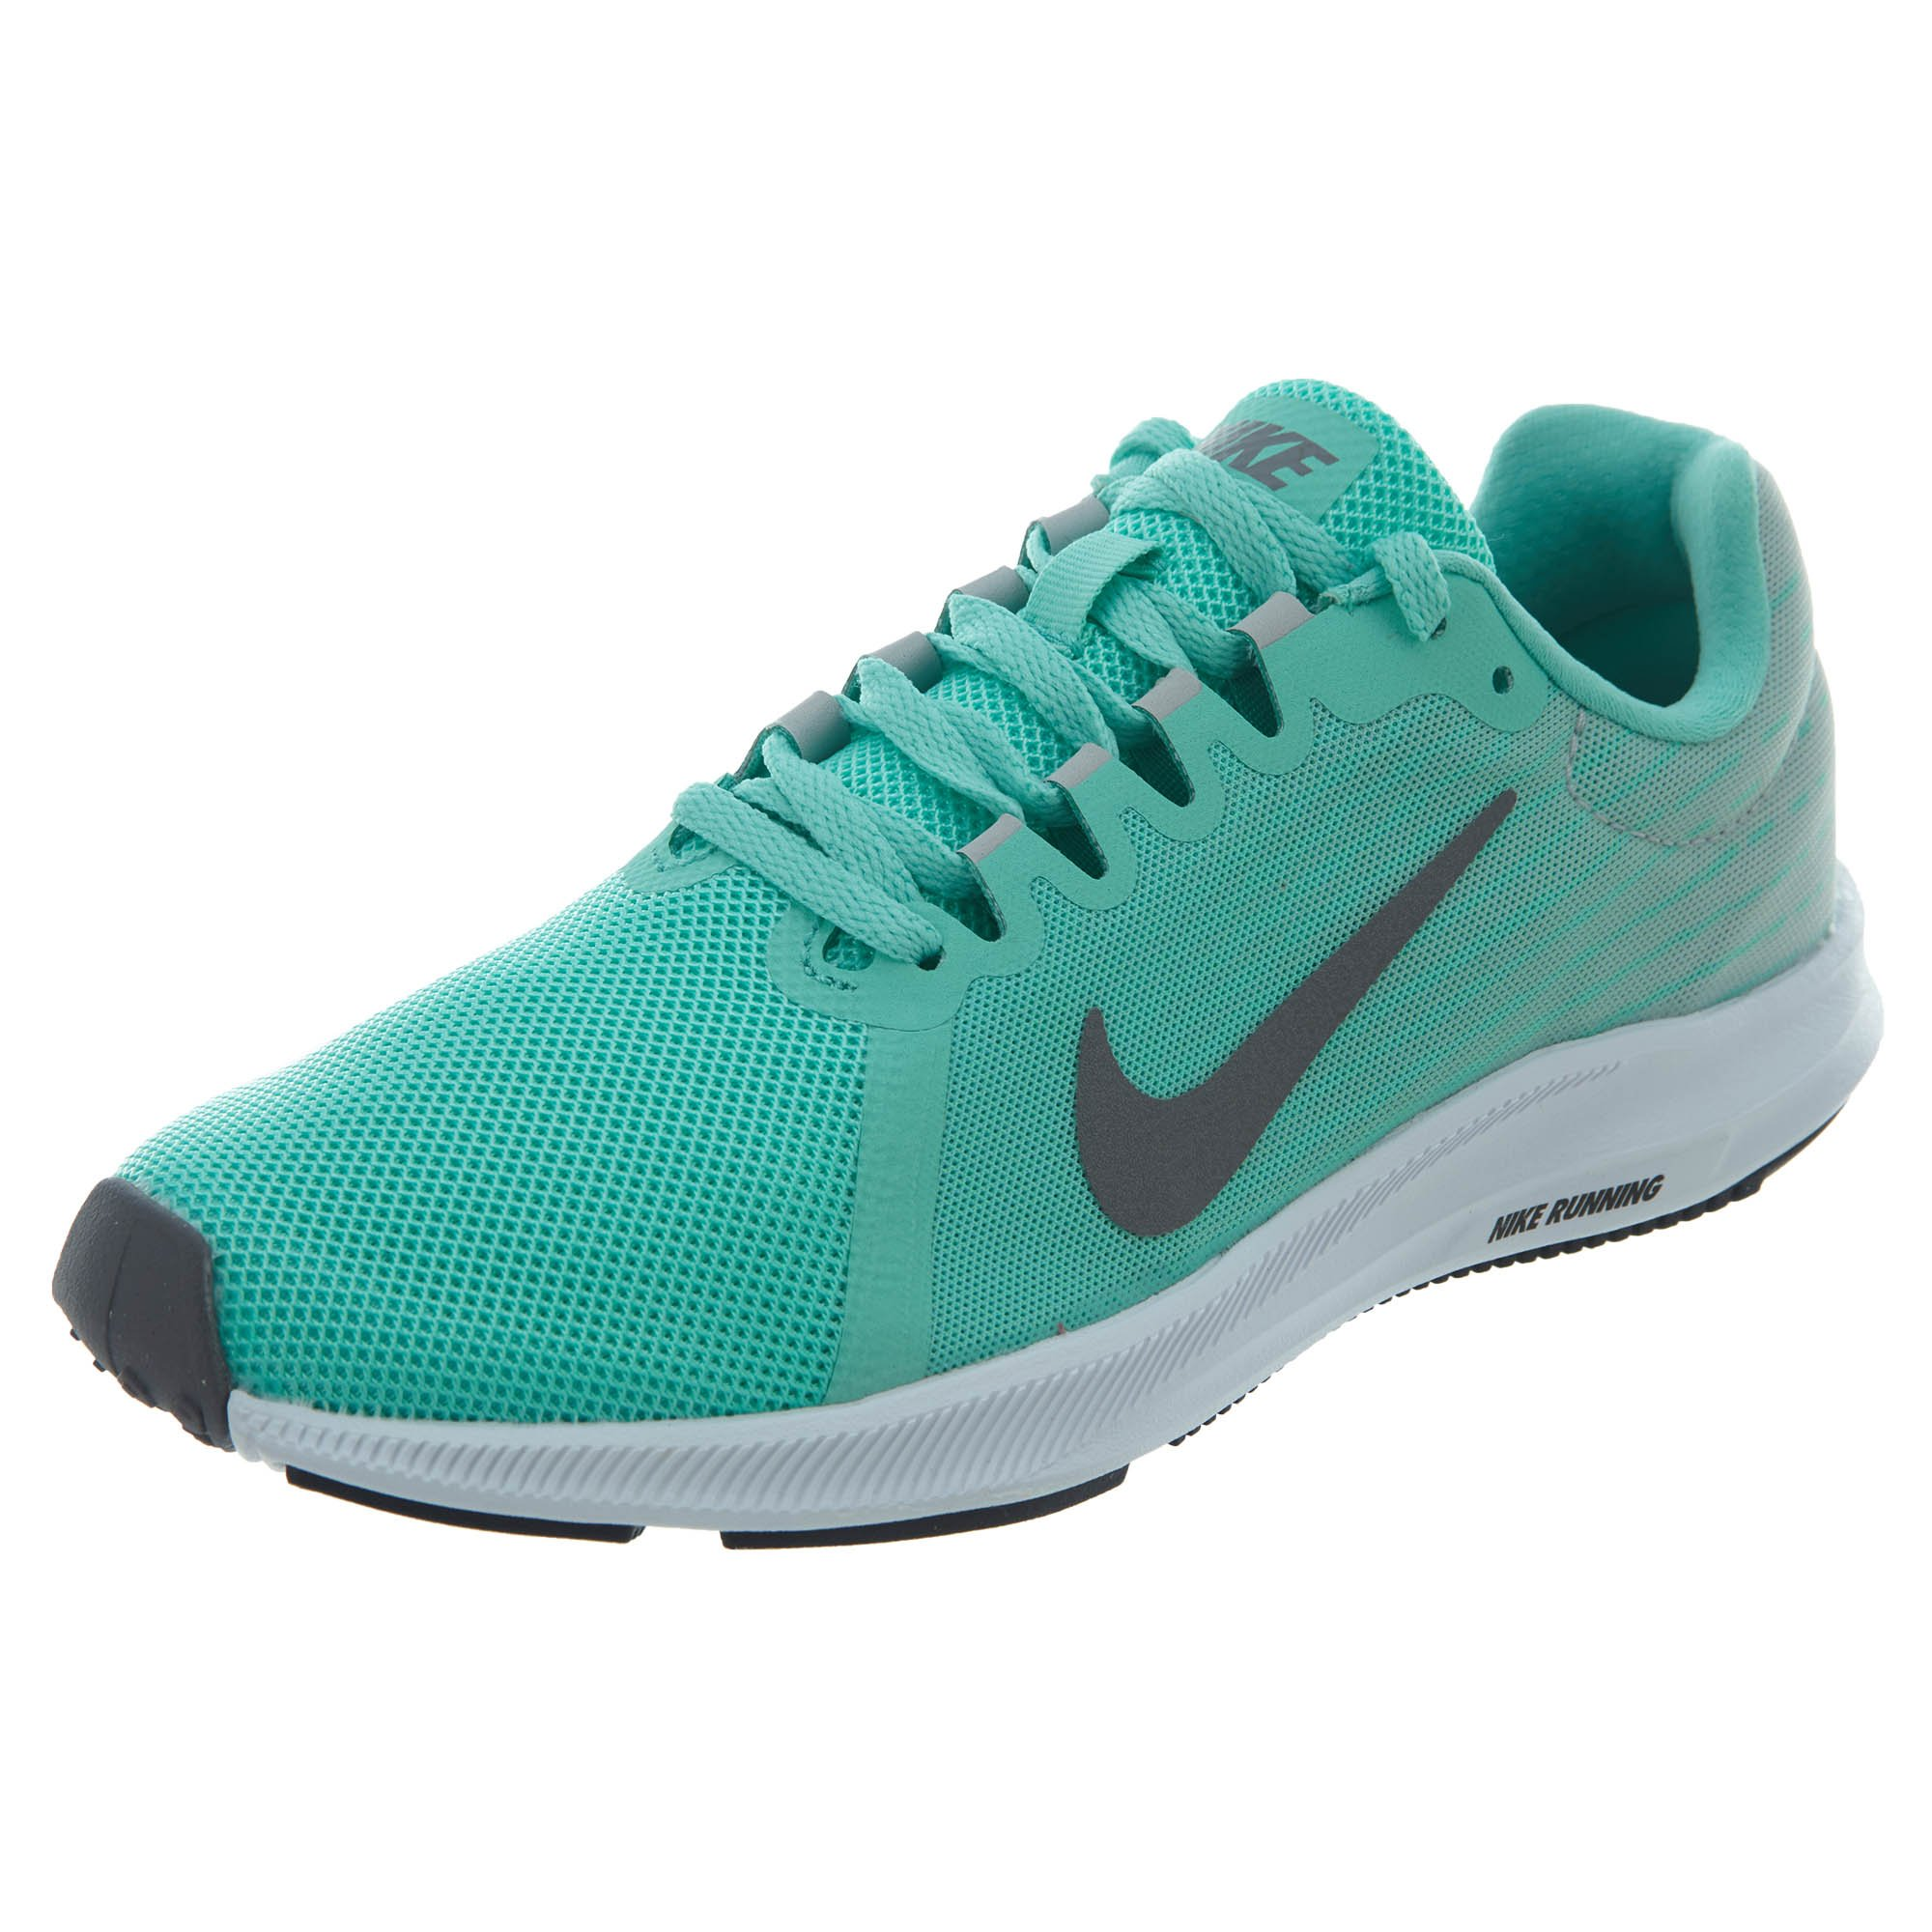 NIKE Downshifter 8 Womens Style: 908994-300 Size: 7